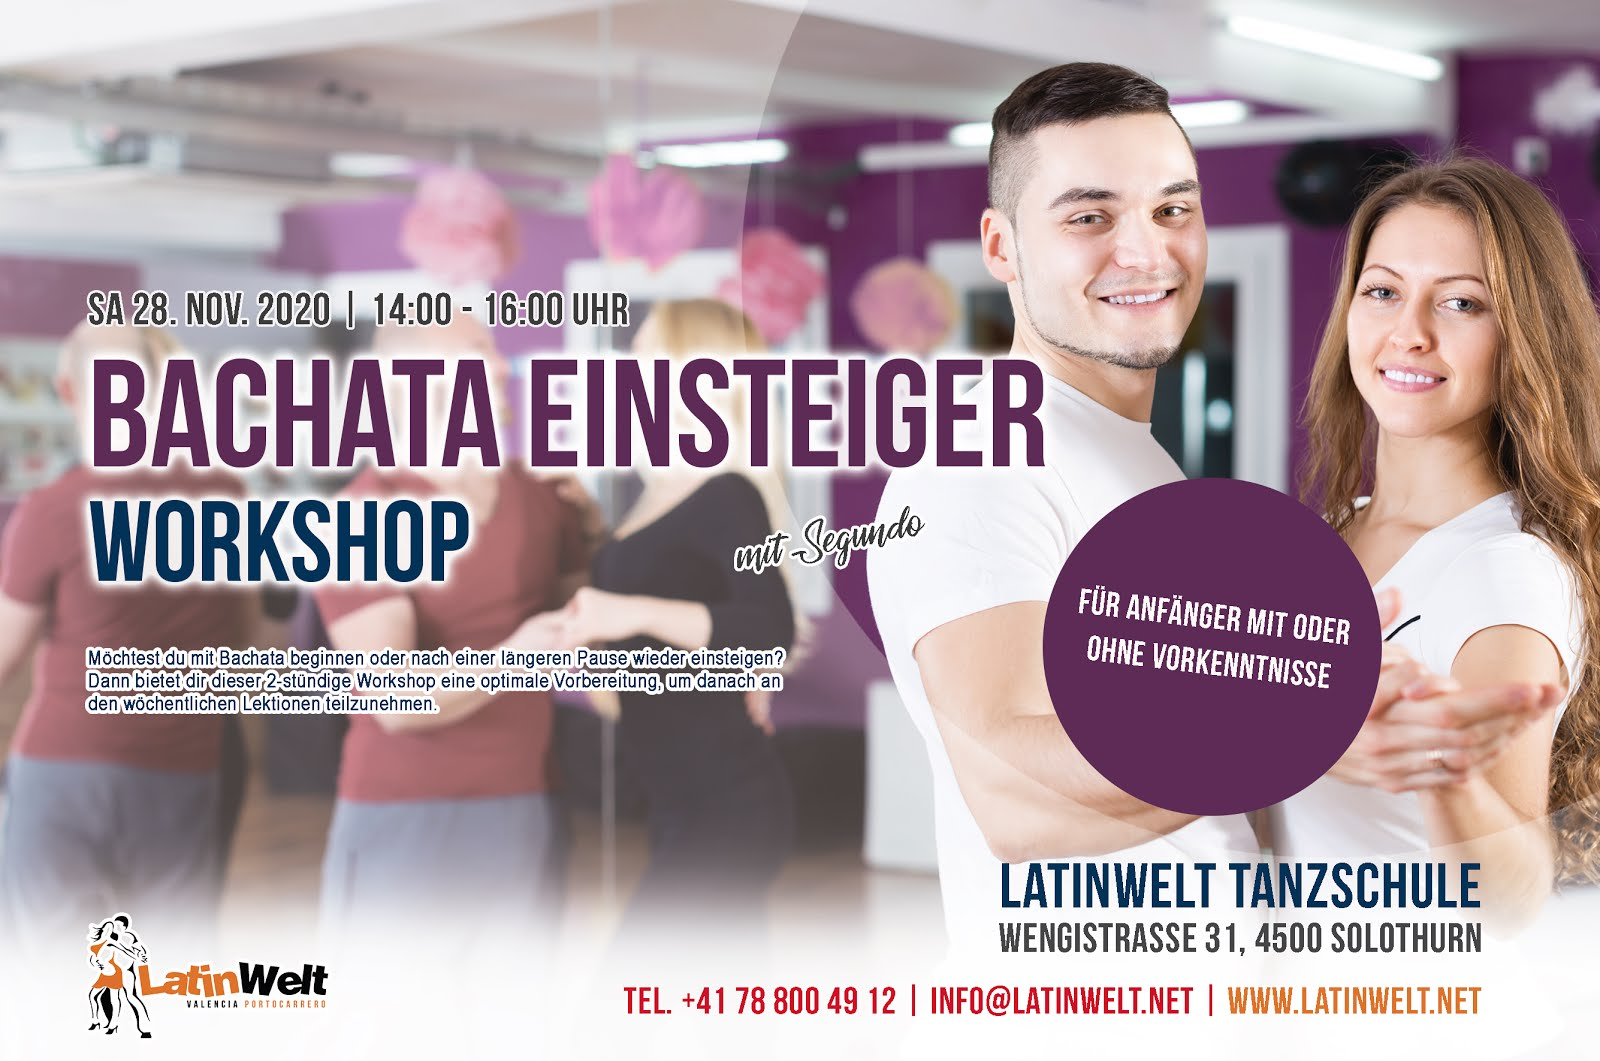 Bachata Einsteiger Workshop